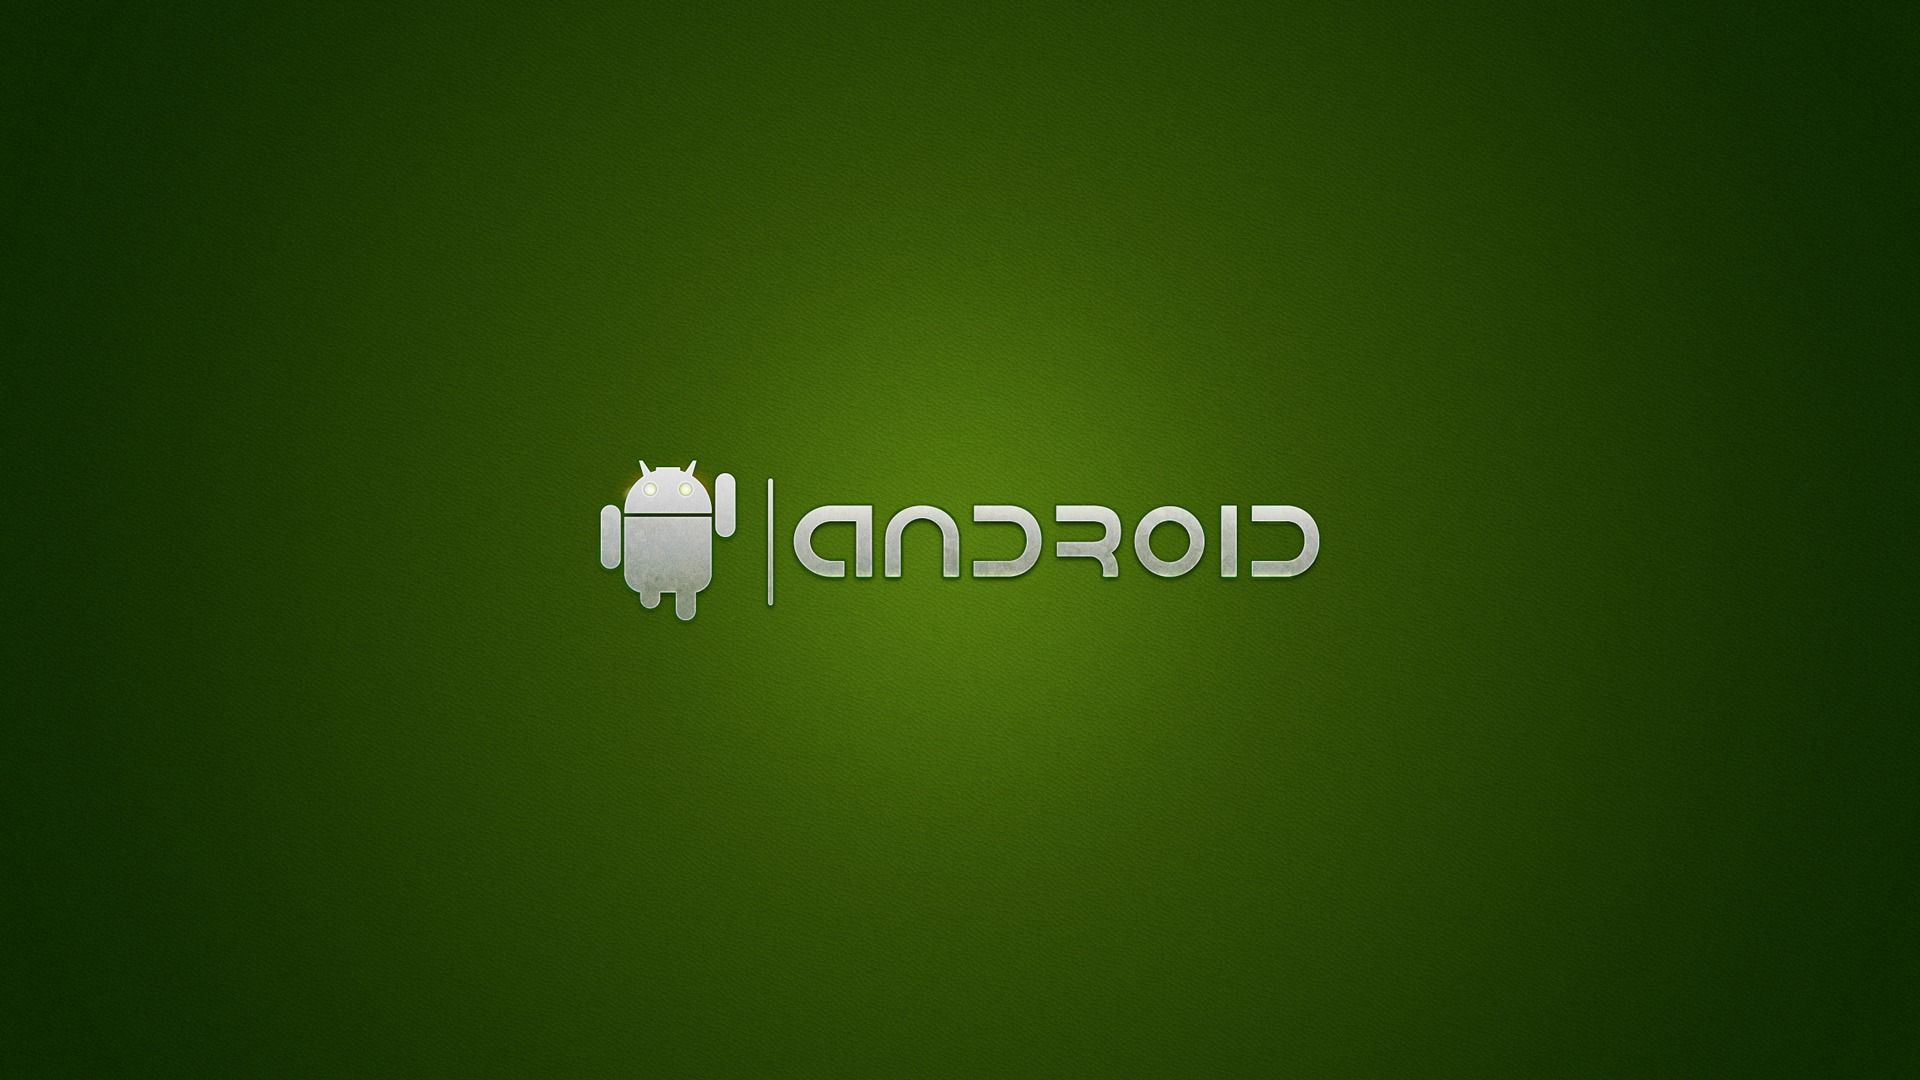 Wallpaper For Android